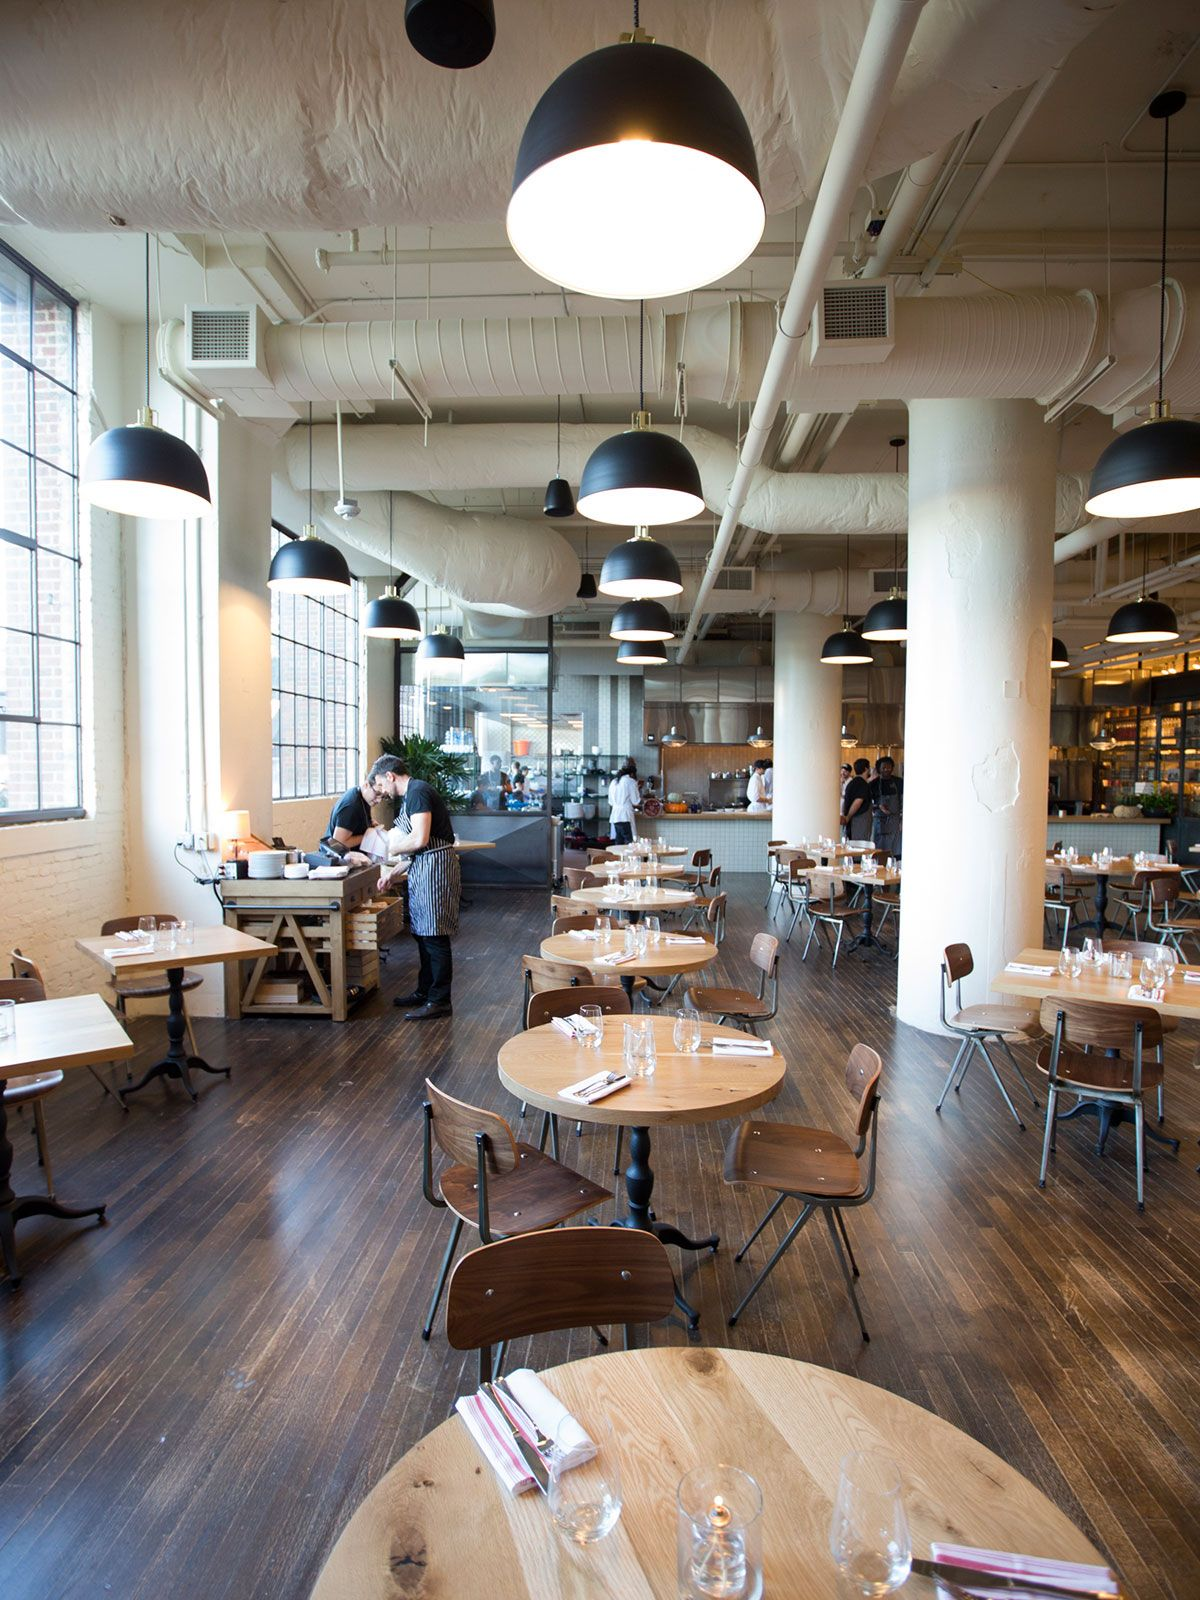 Brezza cucina ponce city market atlanta atl design lighting shopping mall italian food ponce